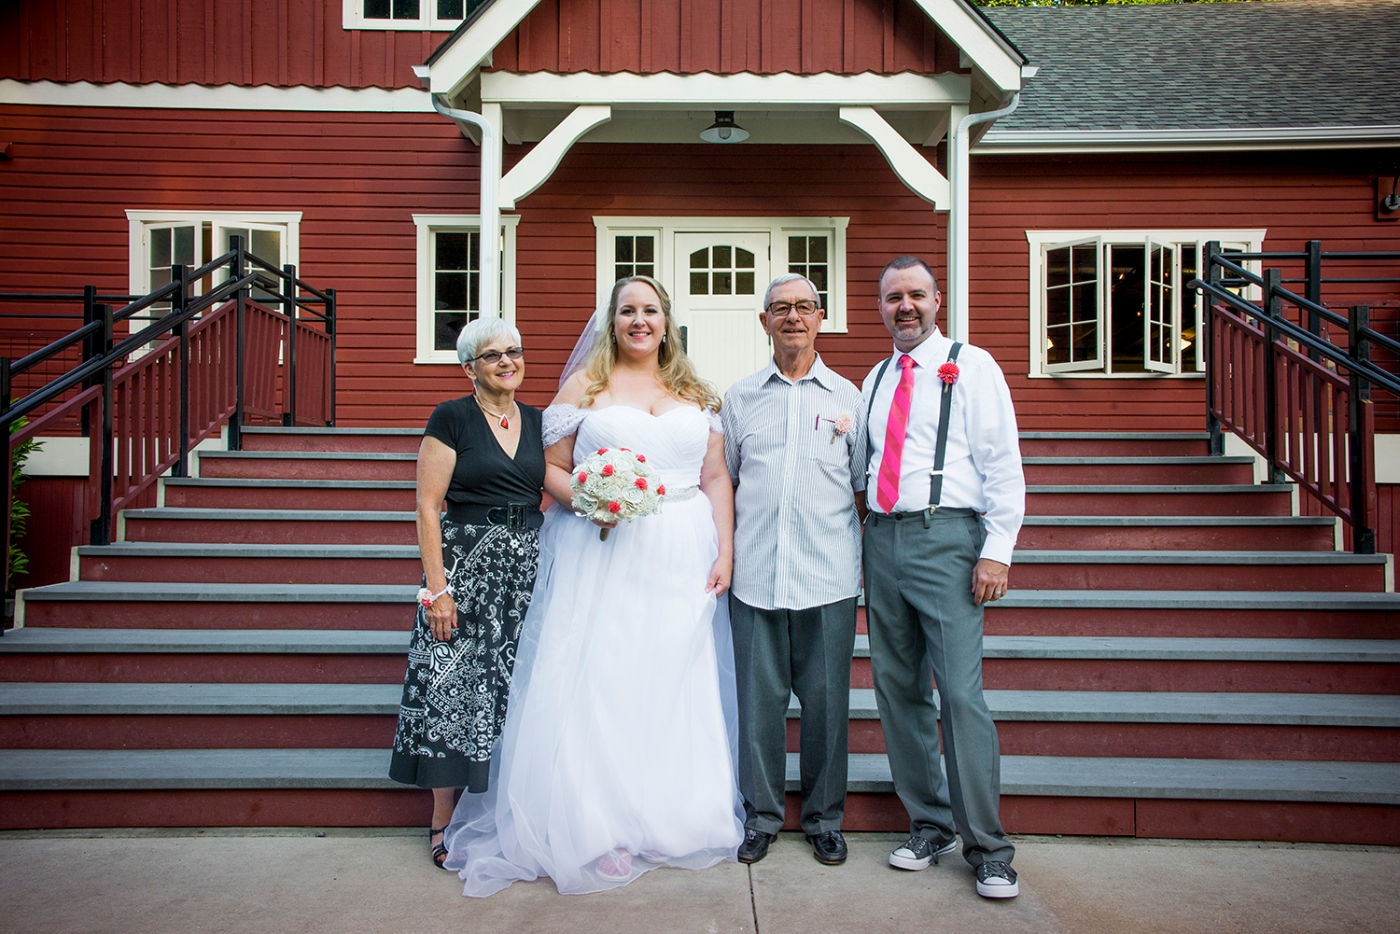 Jane_Speleers_Seattle_photography_Katie_and_Steve_2016_Des_Moines_Marina_Wedding_DSC_2089